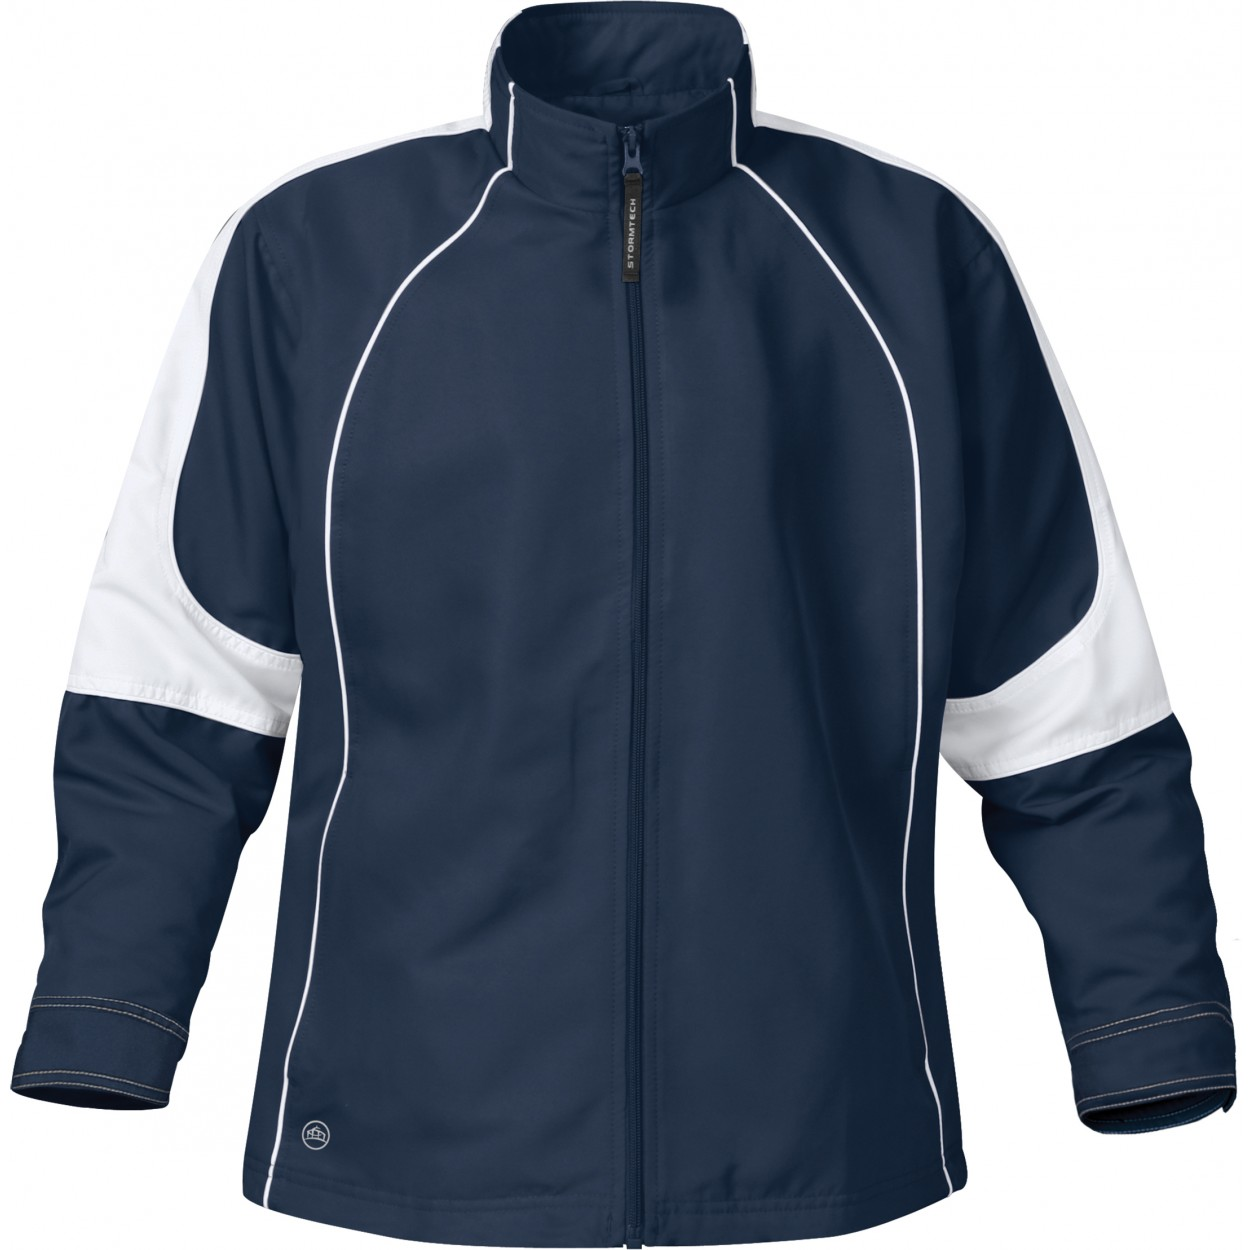 MEN'S - Stormtech Warm-up Jacket